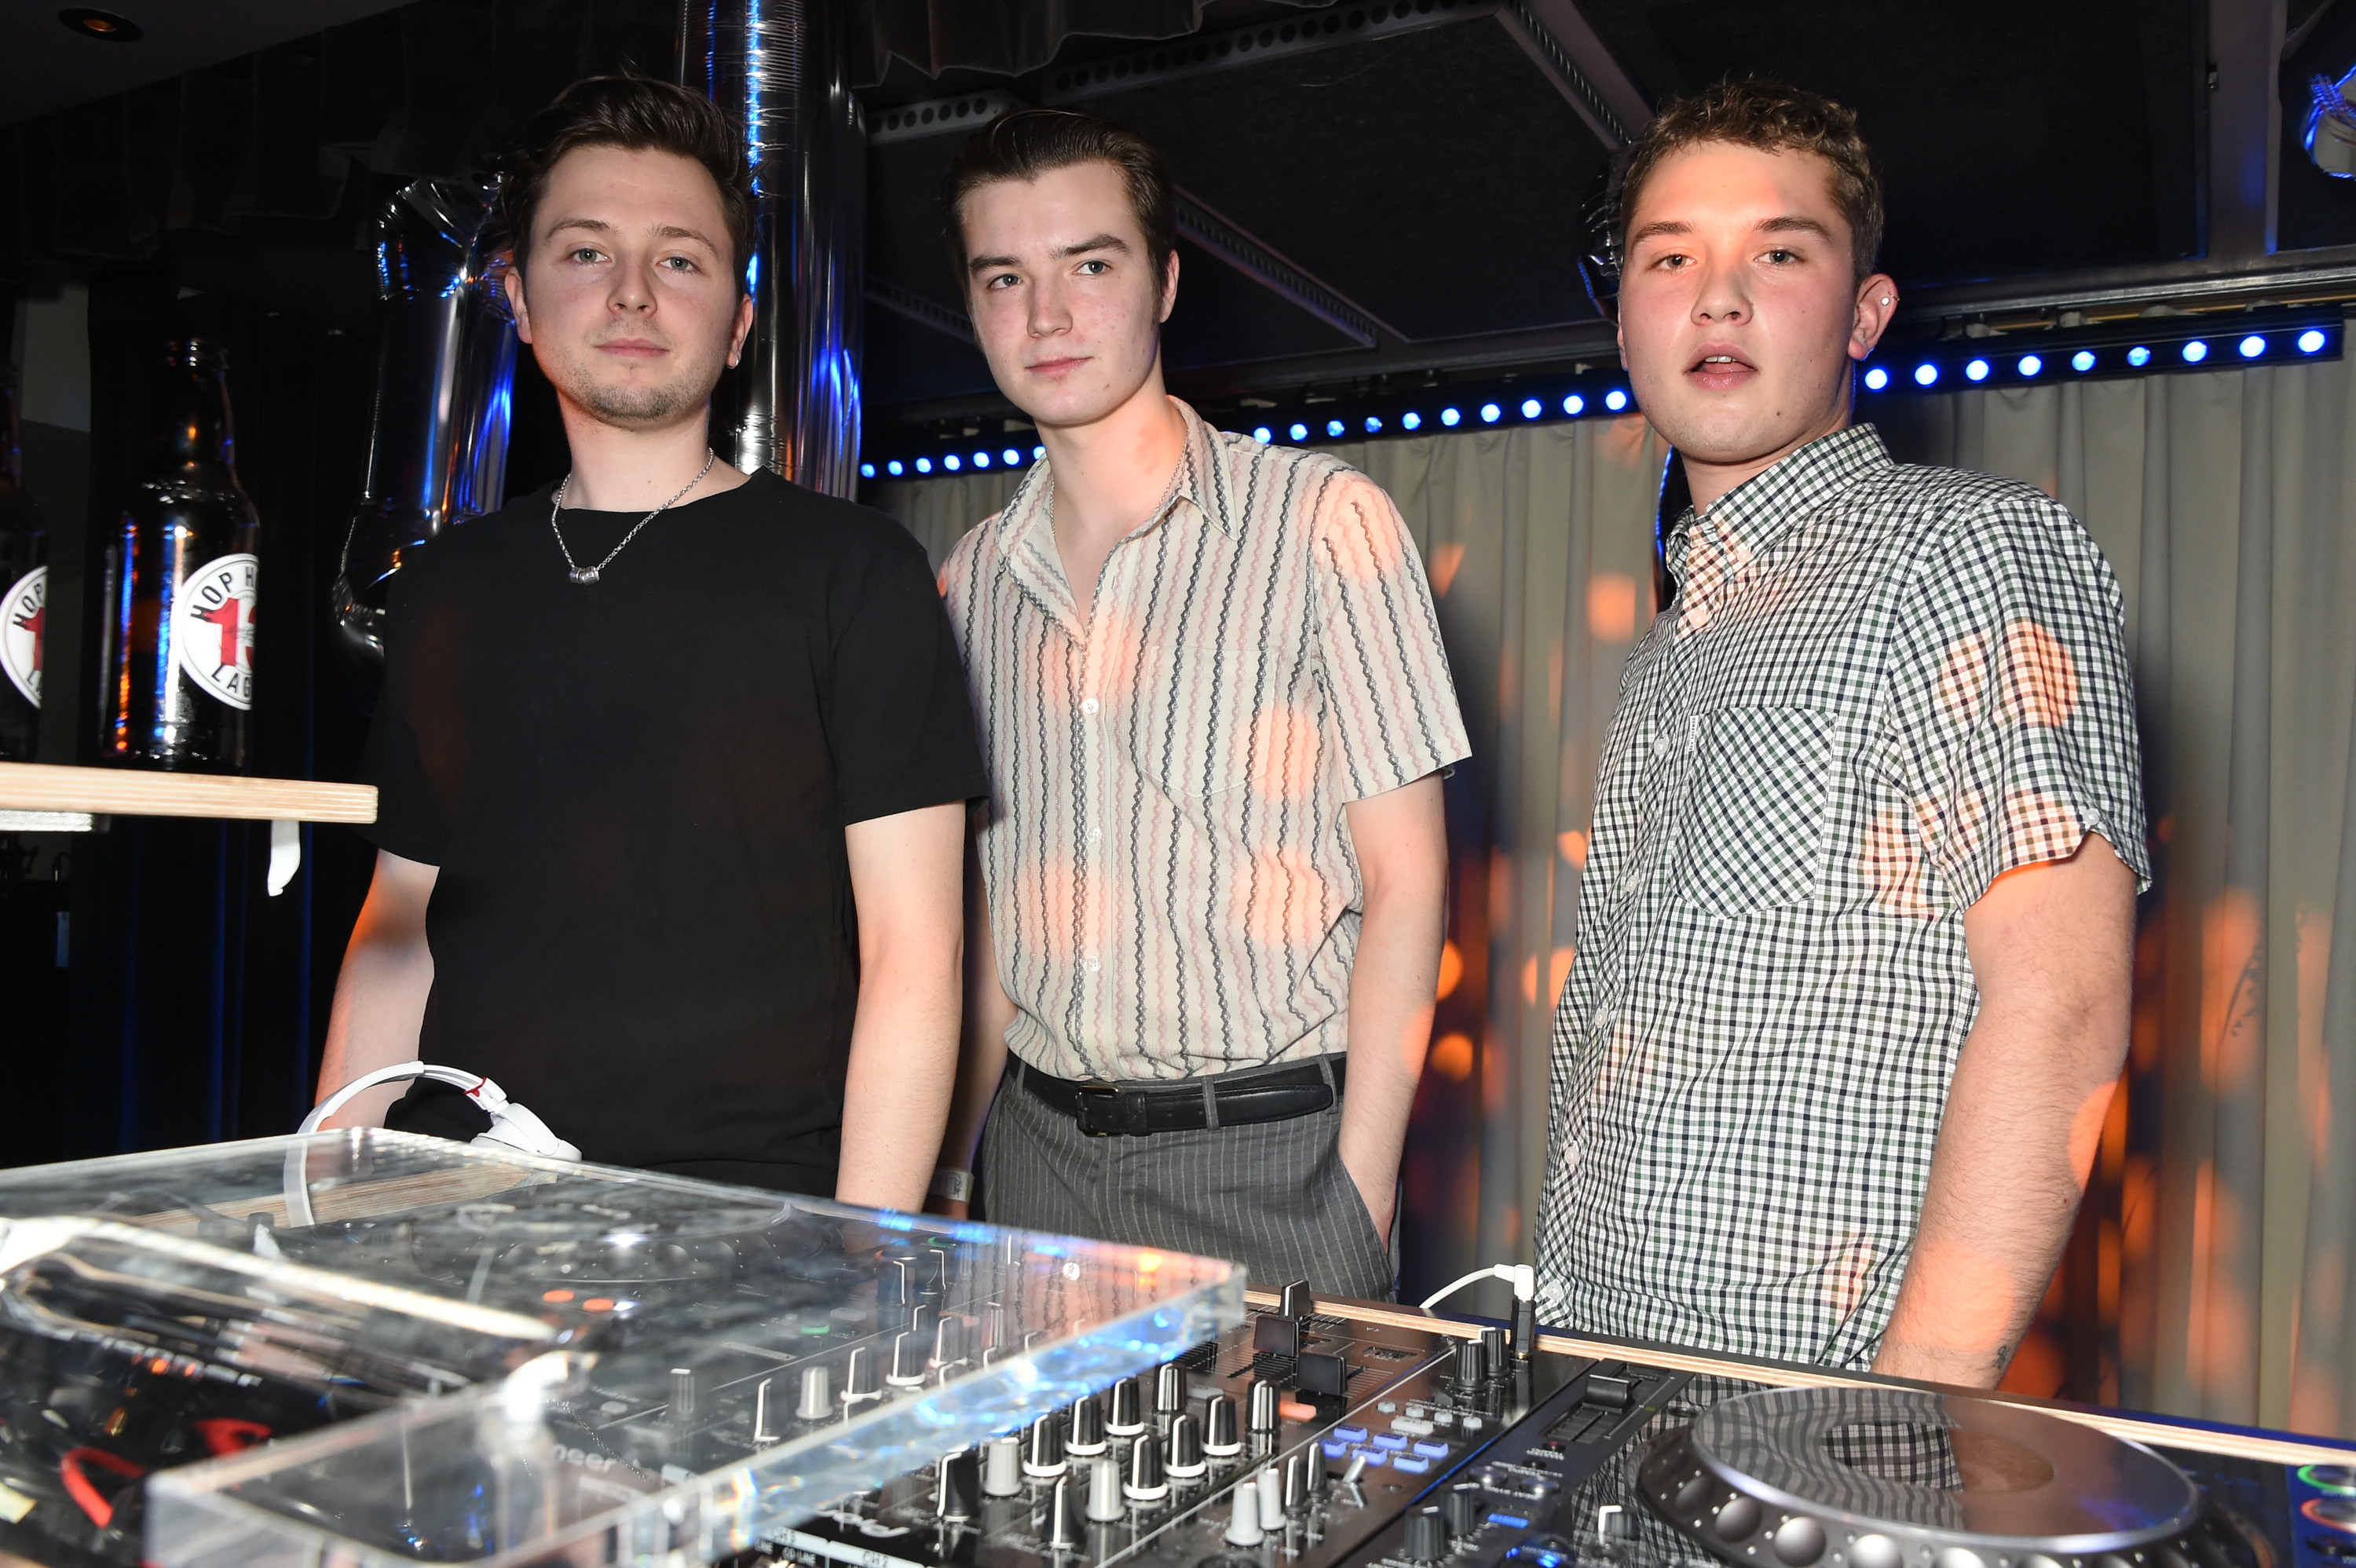 Jude Law's son Rafferty 'needed his mate's help to DJ' at a pre-BAFTA party